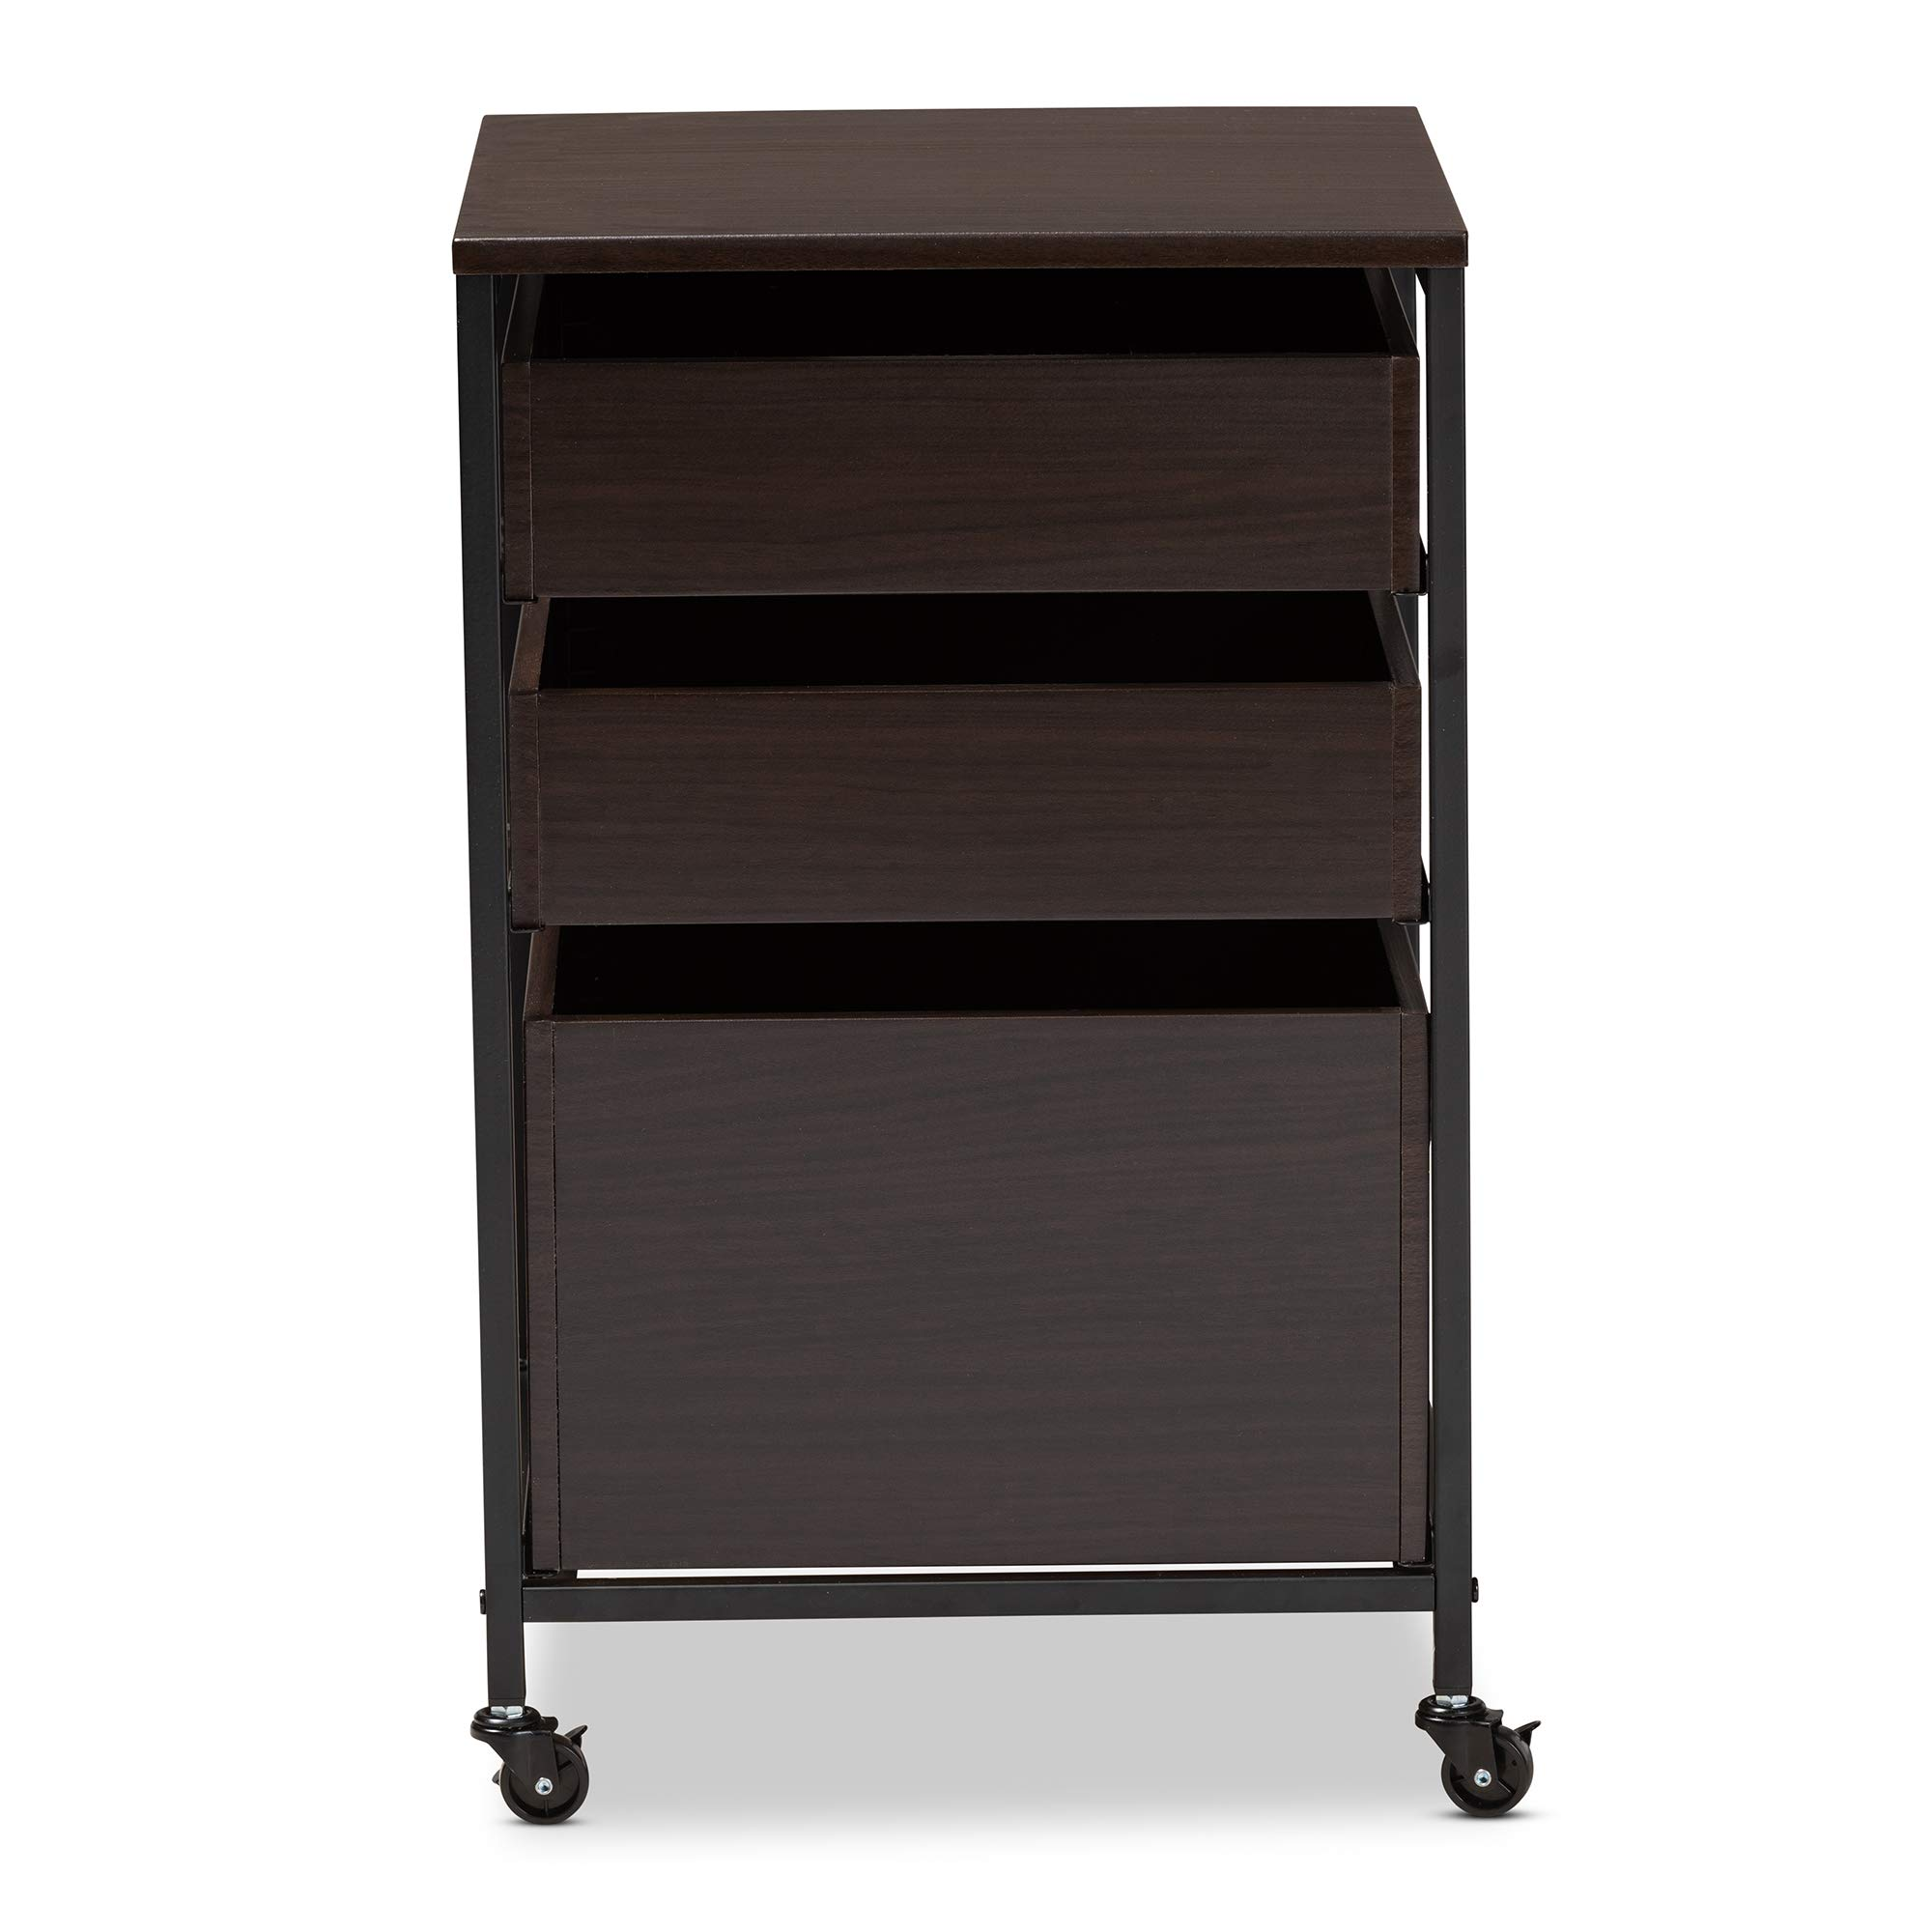 Baxton Studio 155-9688-AMZ Multipurpose Shelving and Cabinets, One Size, Espresso by Baxton Studio (Image #6)